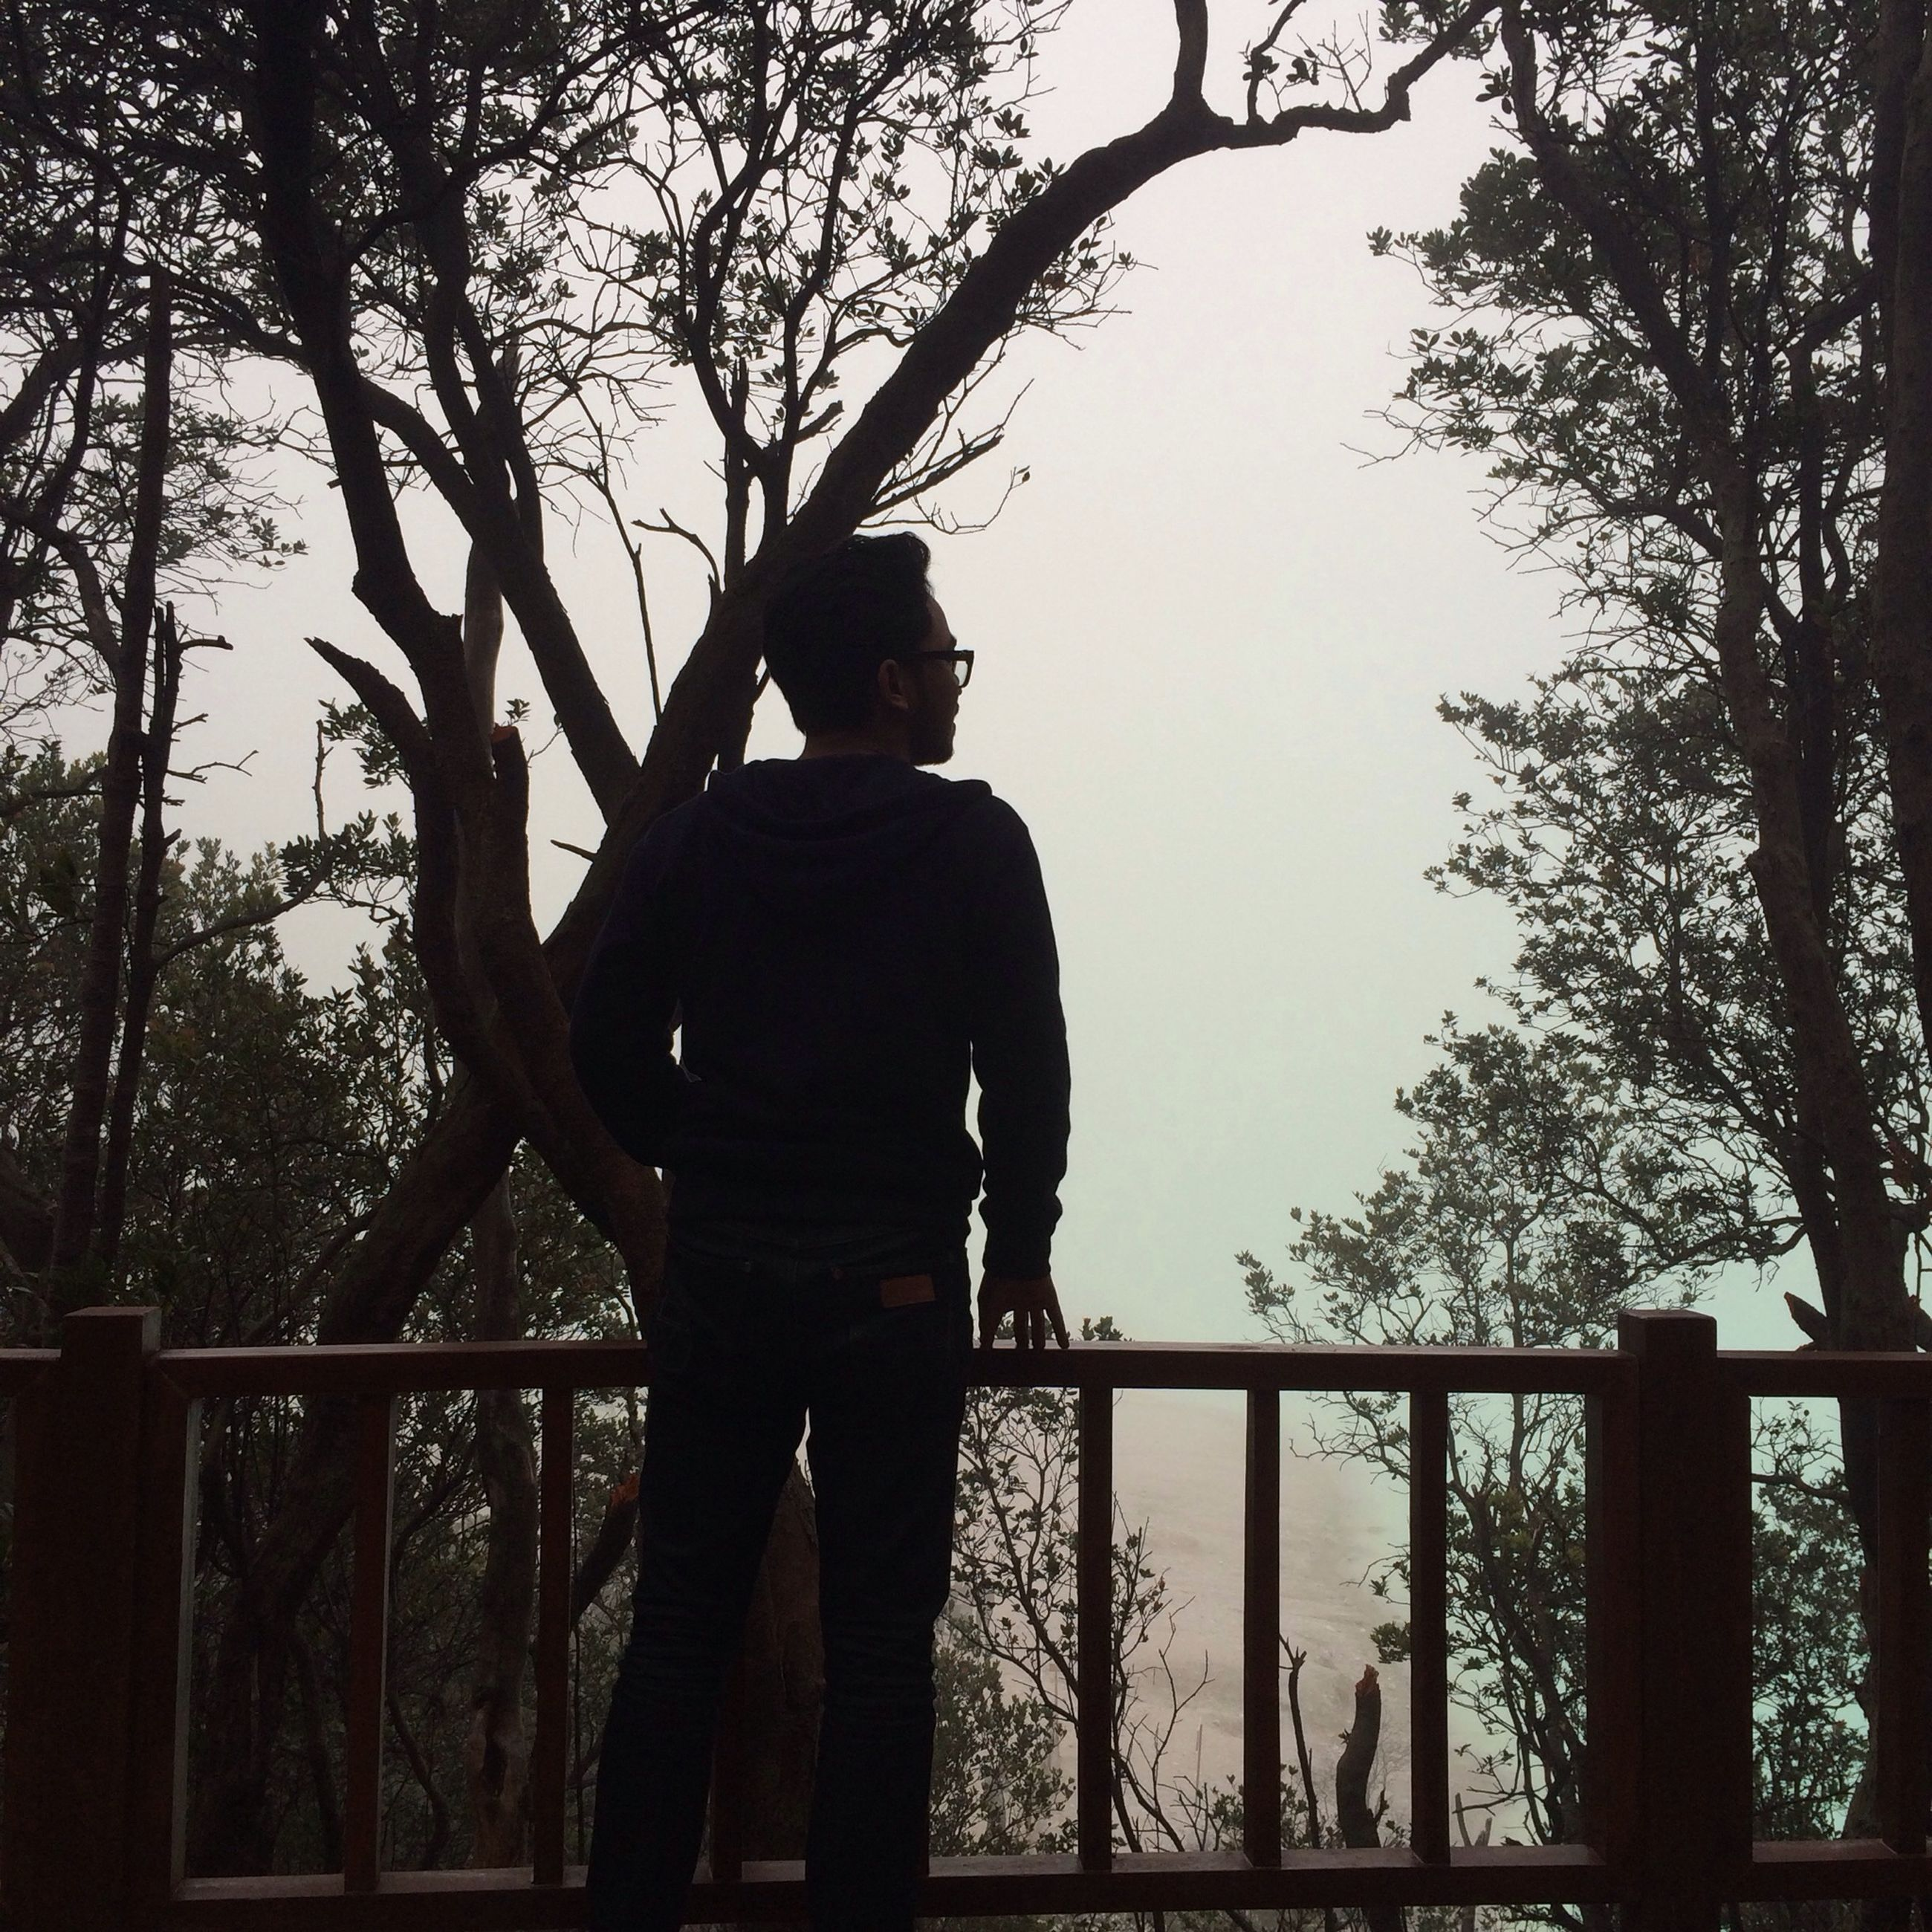 tree, lifestyles, leisure activity, rear view, silhouette, standing, railing, full length, three quarter length, branch, men, clear sky, person, casual clothing, sky, side view, nature, outdoors